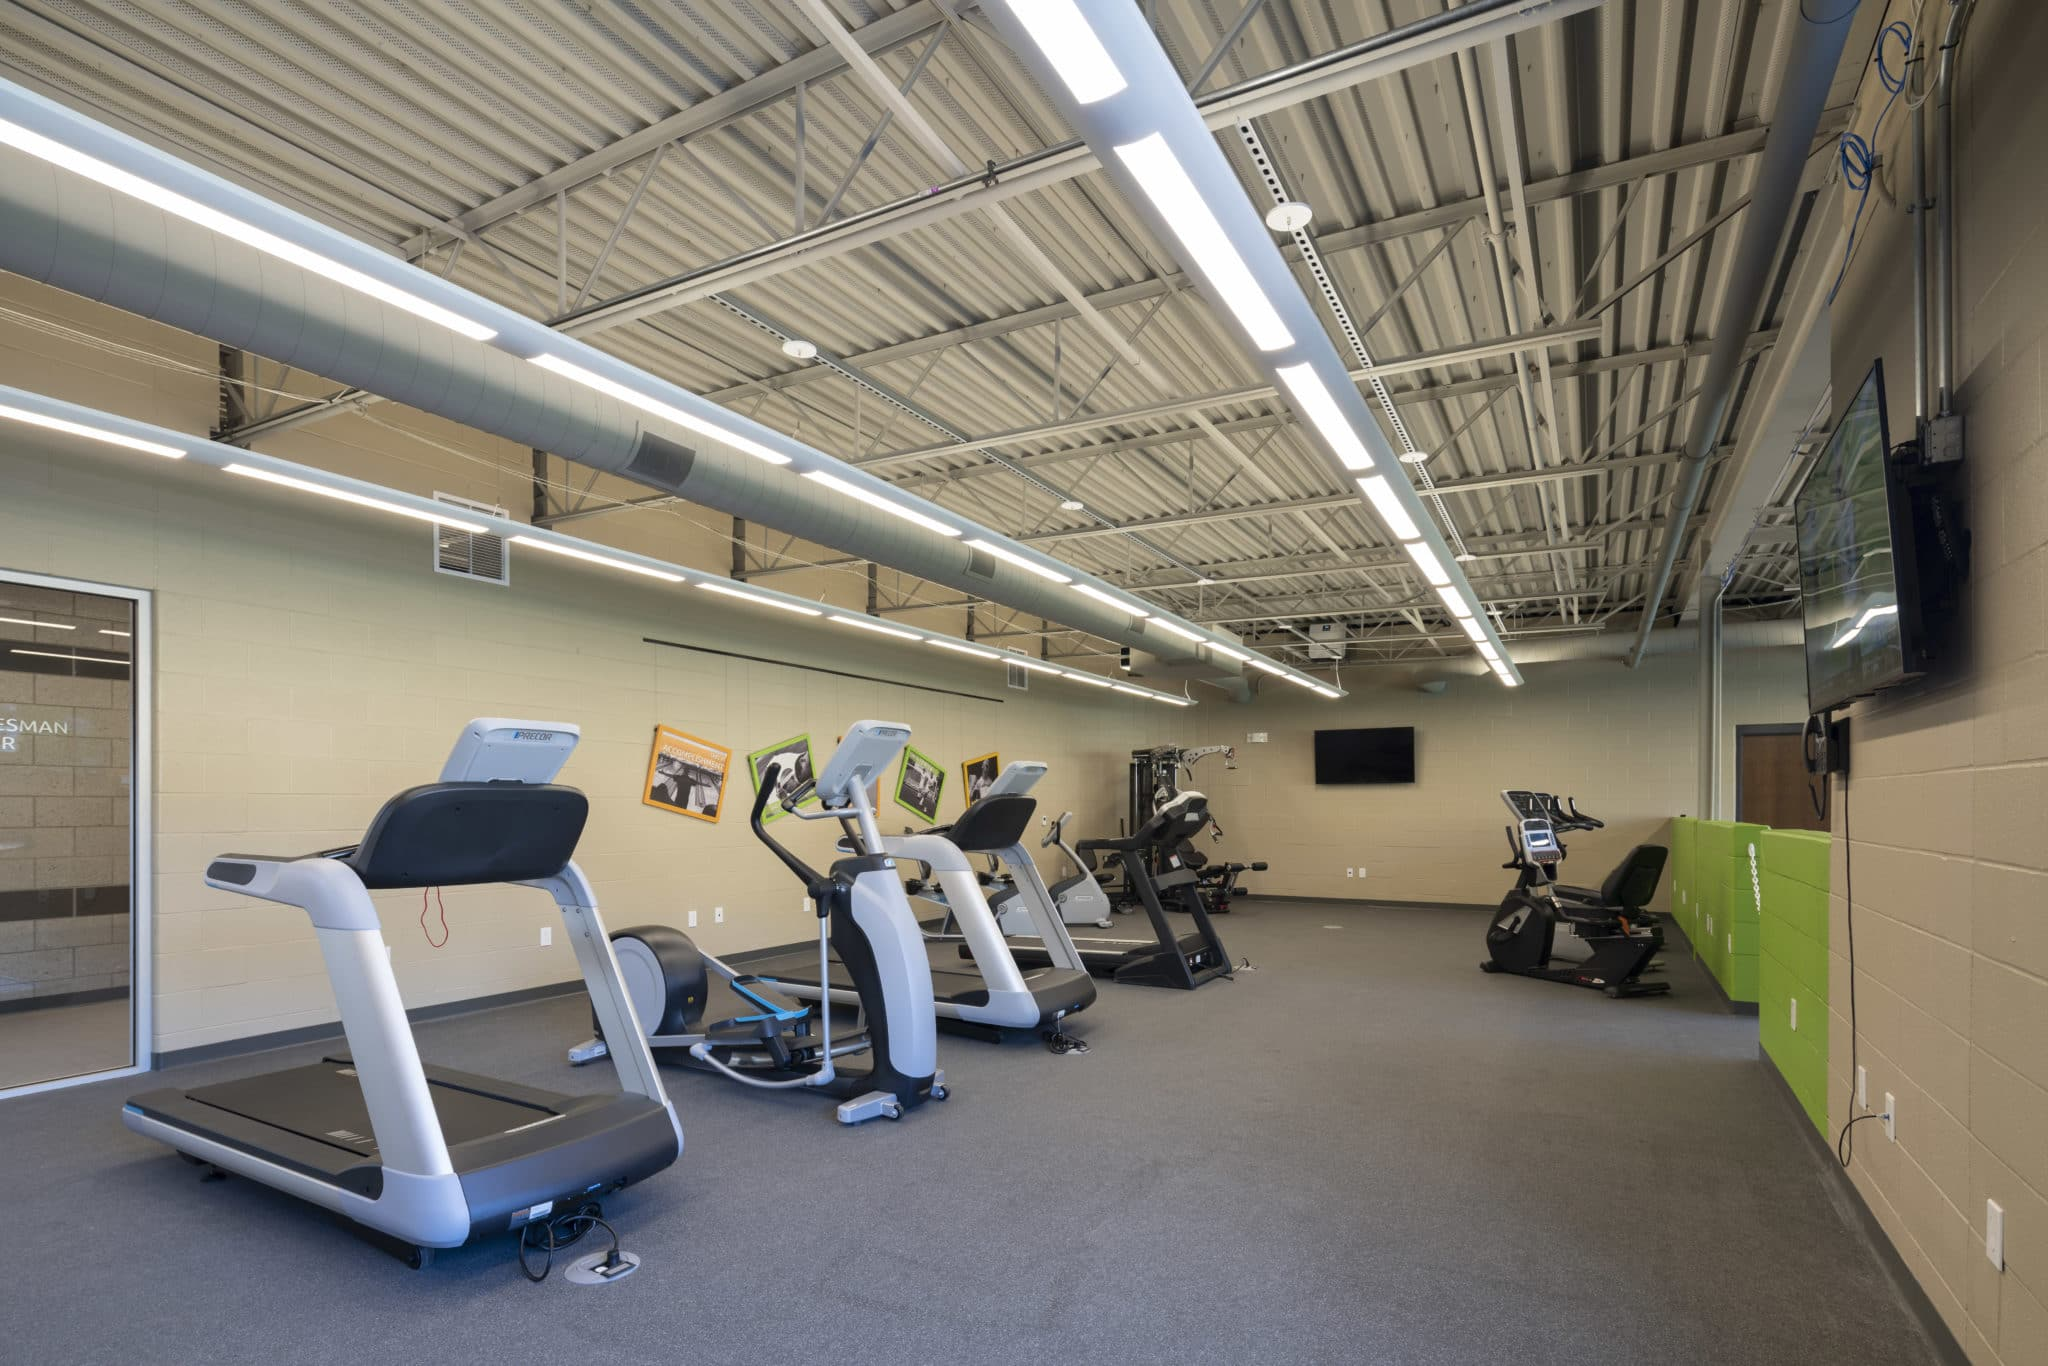 Treadmills, ellipticals, and stationary bicycles in the fitness center at the Training for Life Campus